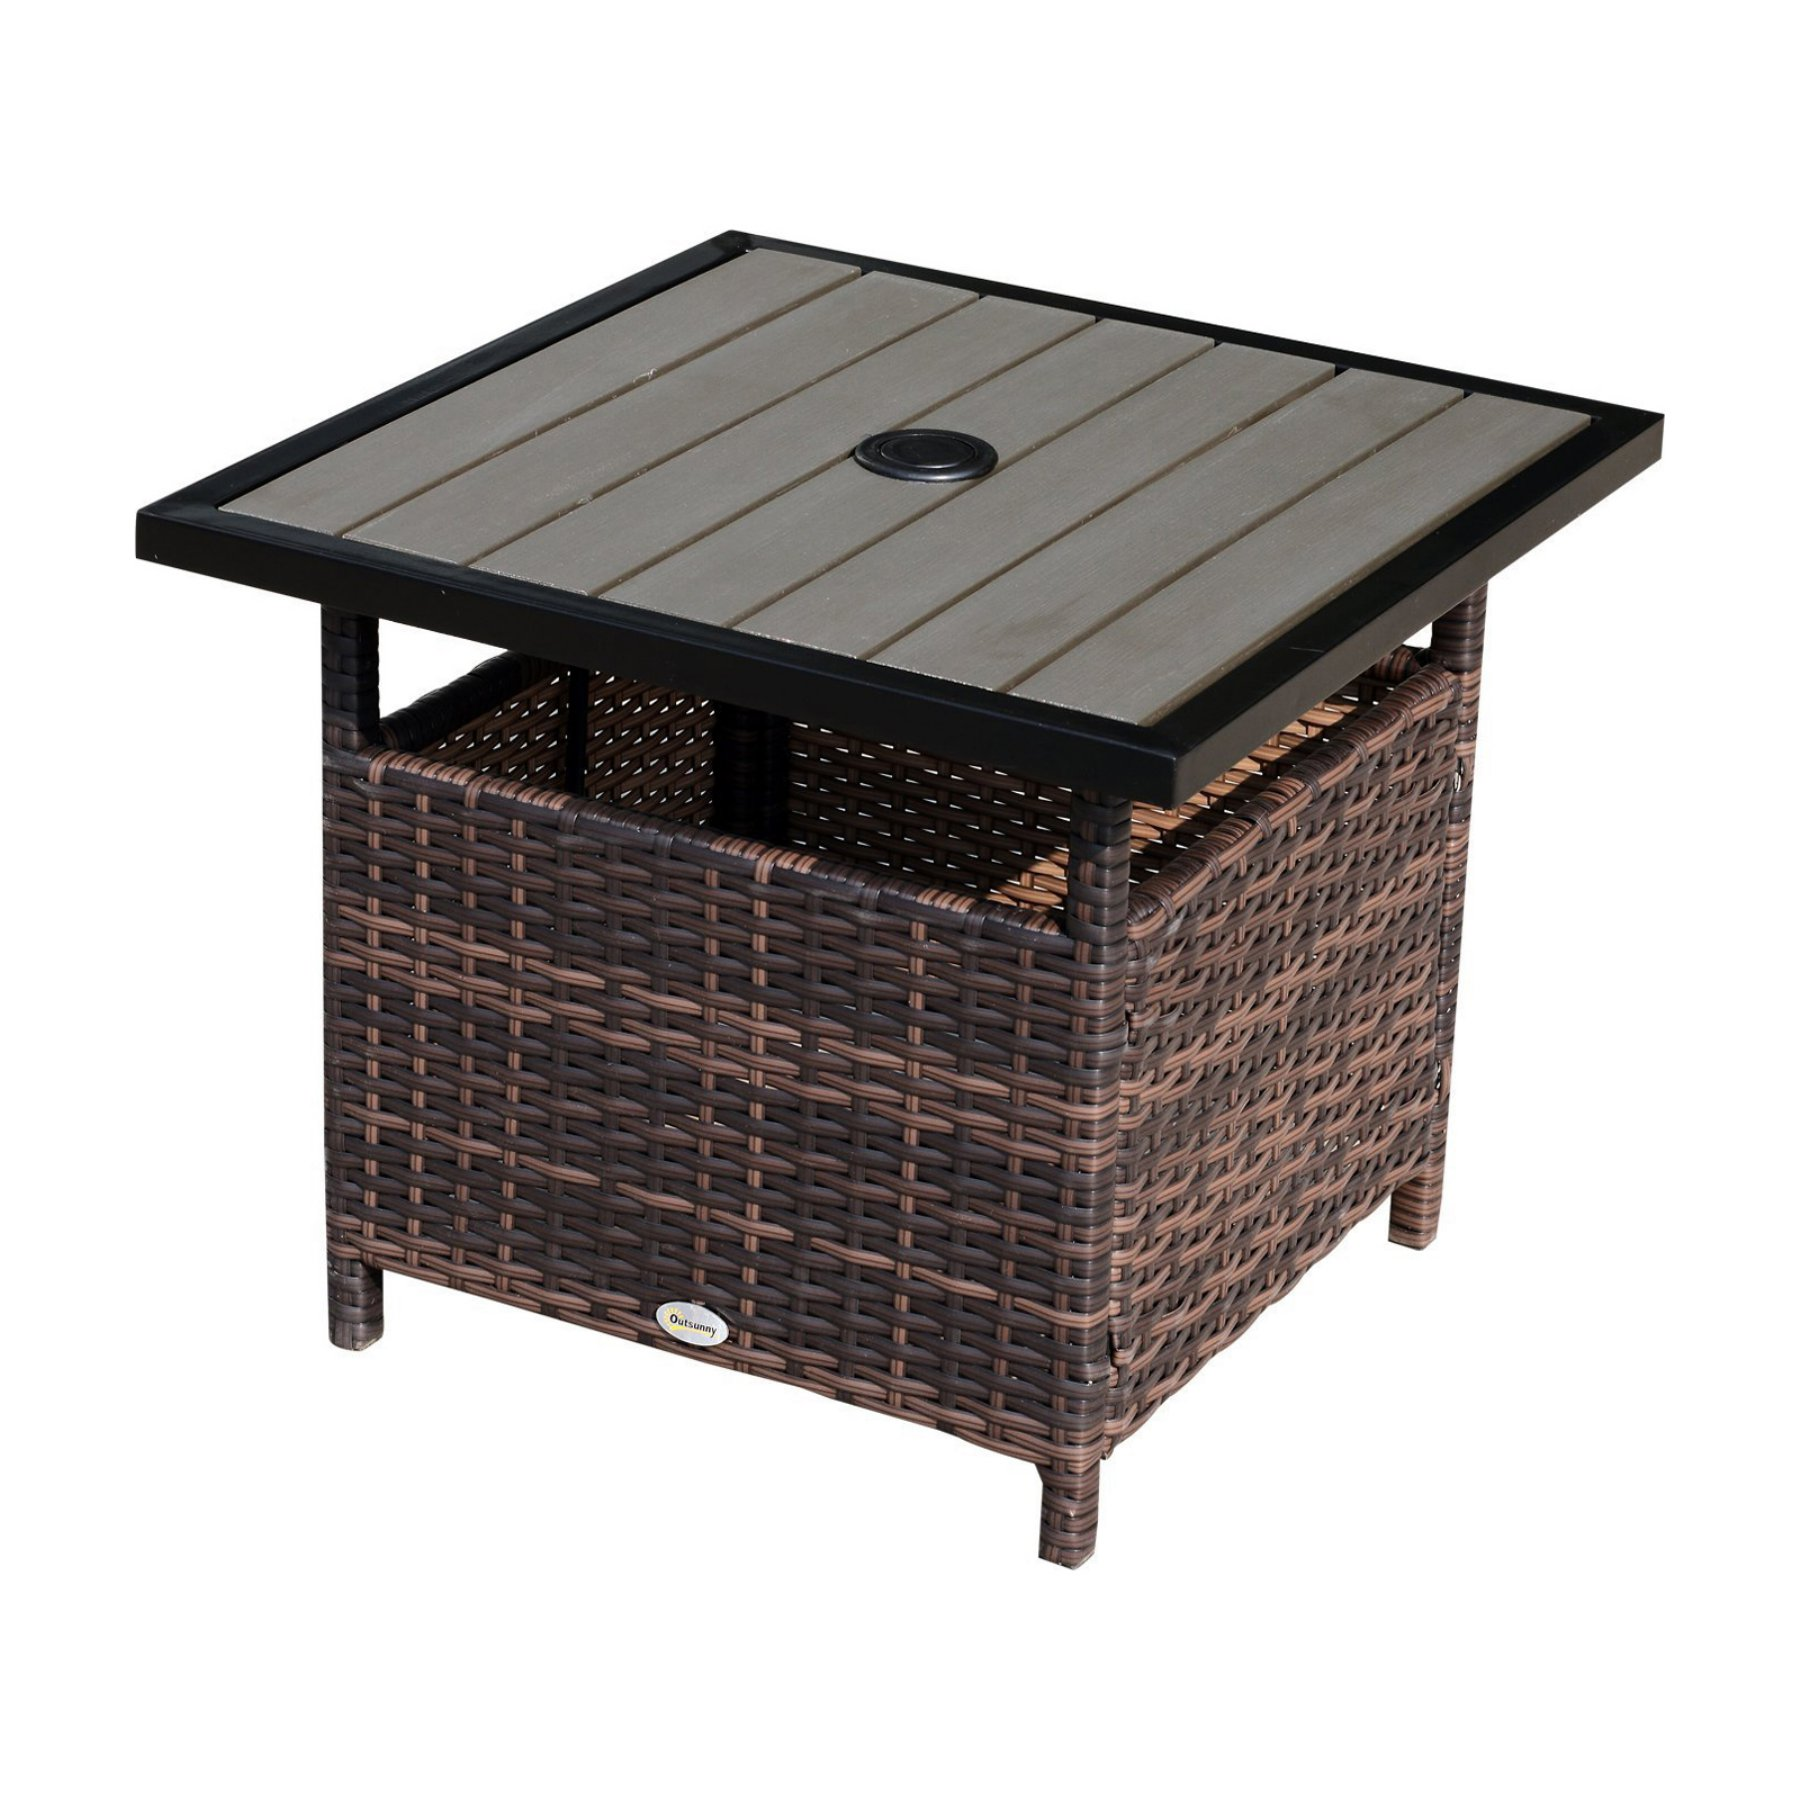 outsunny steel rattan wicker outdoor patio accent end table garden bedside design ideas with ice bucket astoria furniture nite stands dining set round for chest farm style sofa